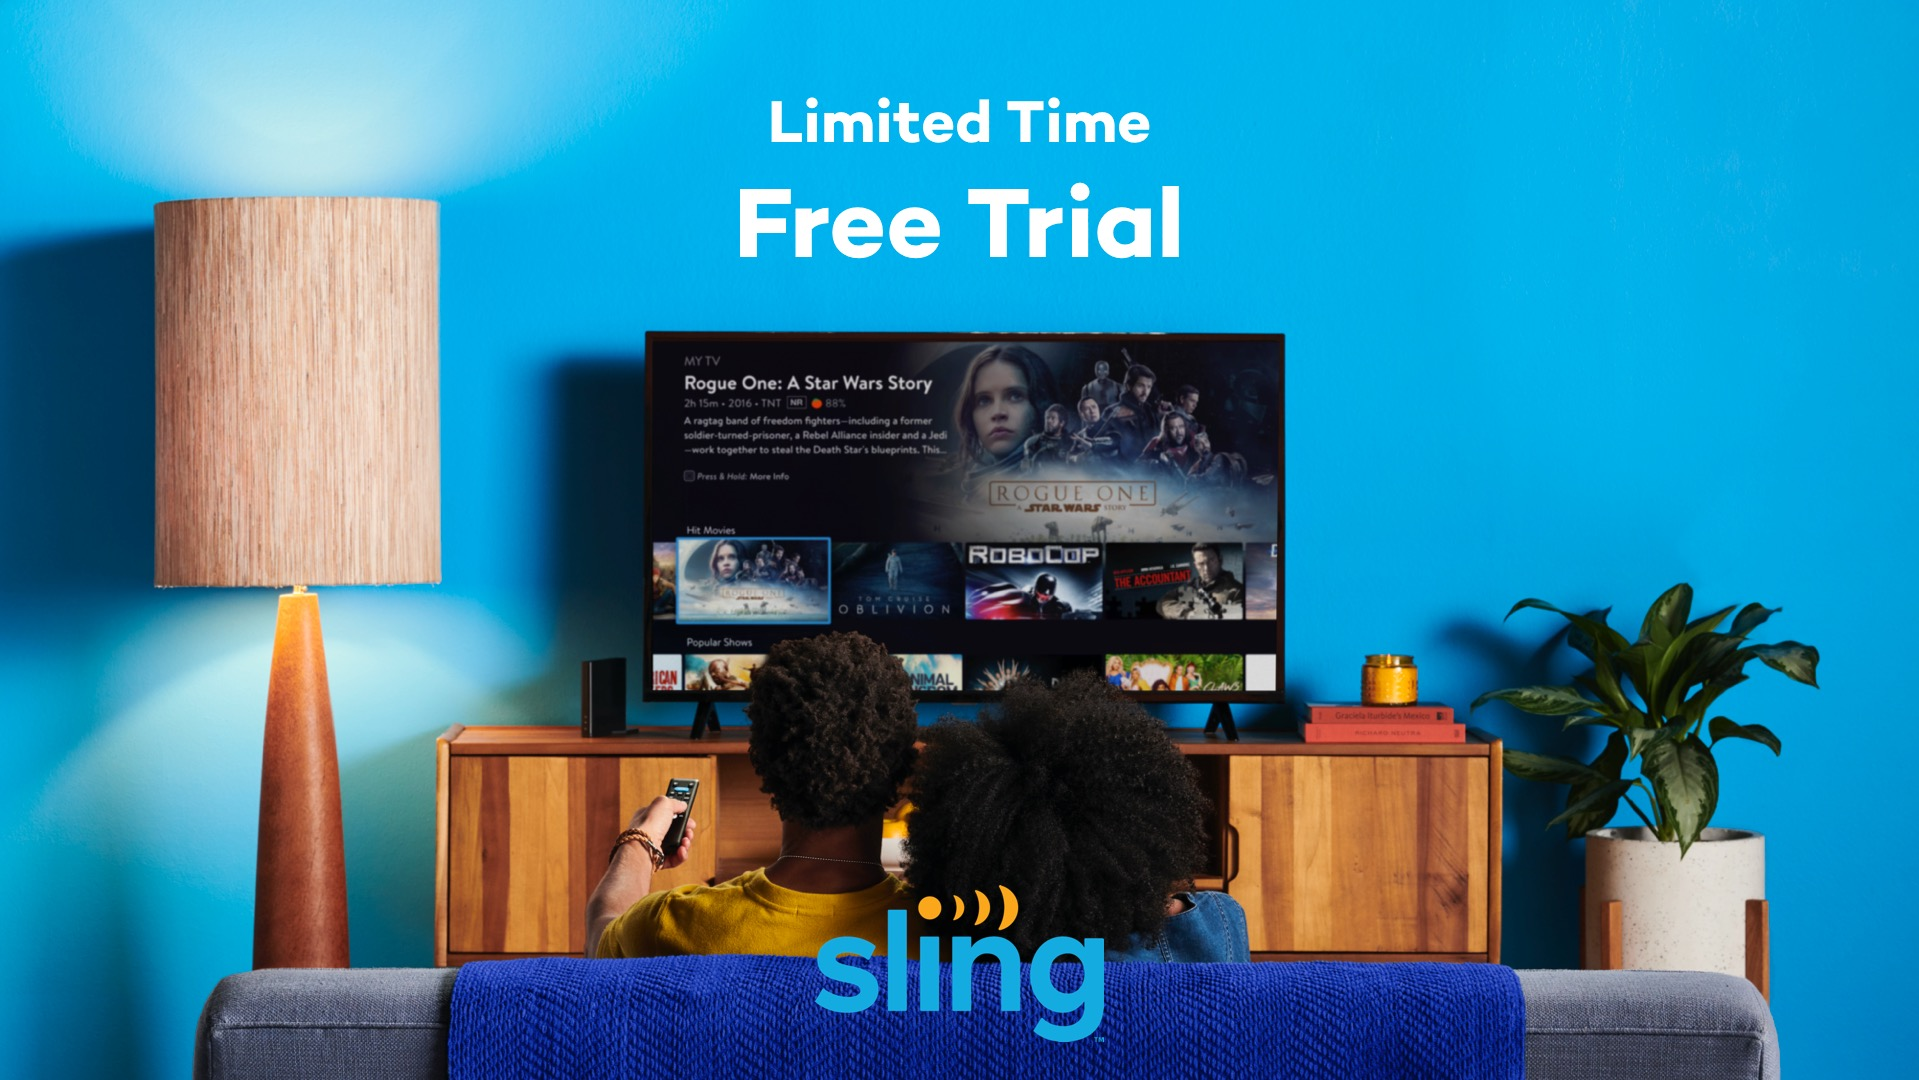 Have you tried Sling Free?